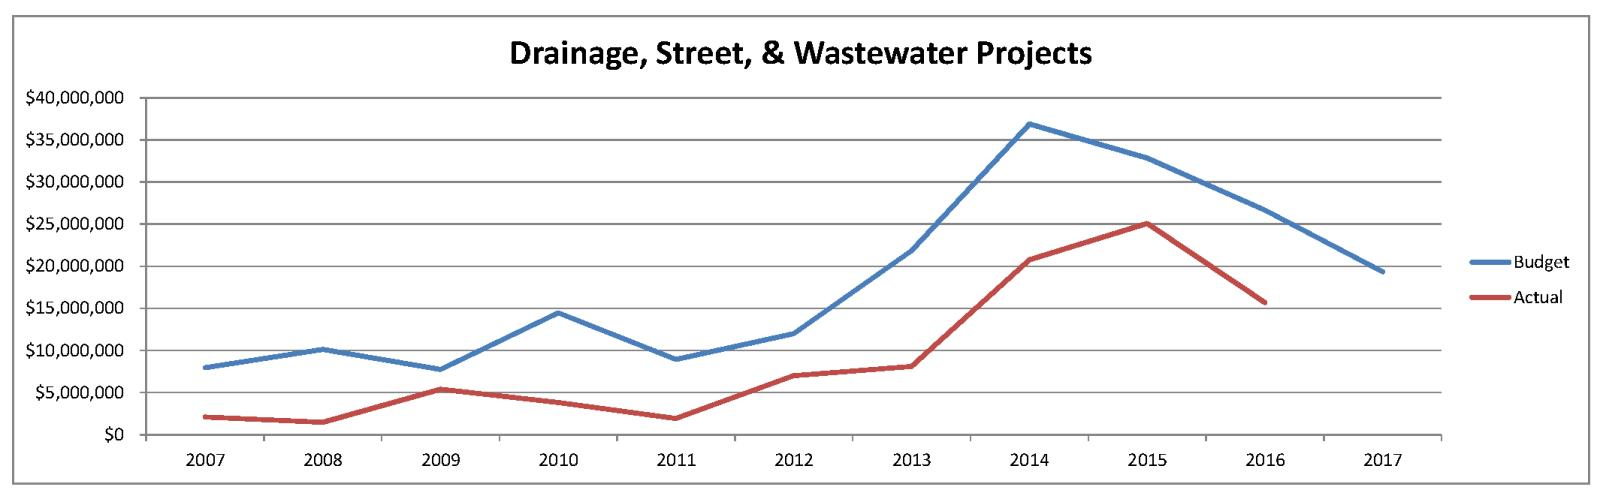 Drainage, Street & WW Budget vs. Actual History